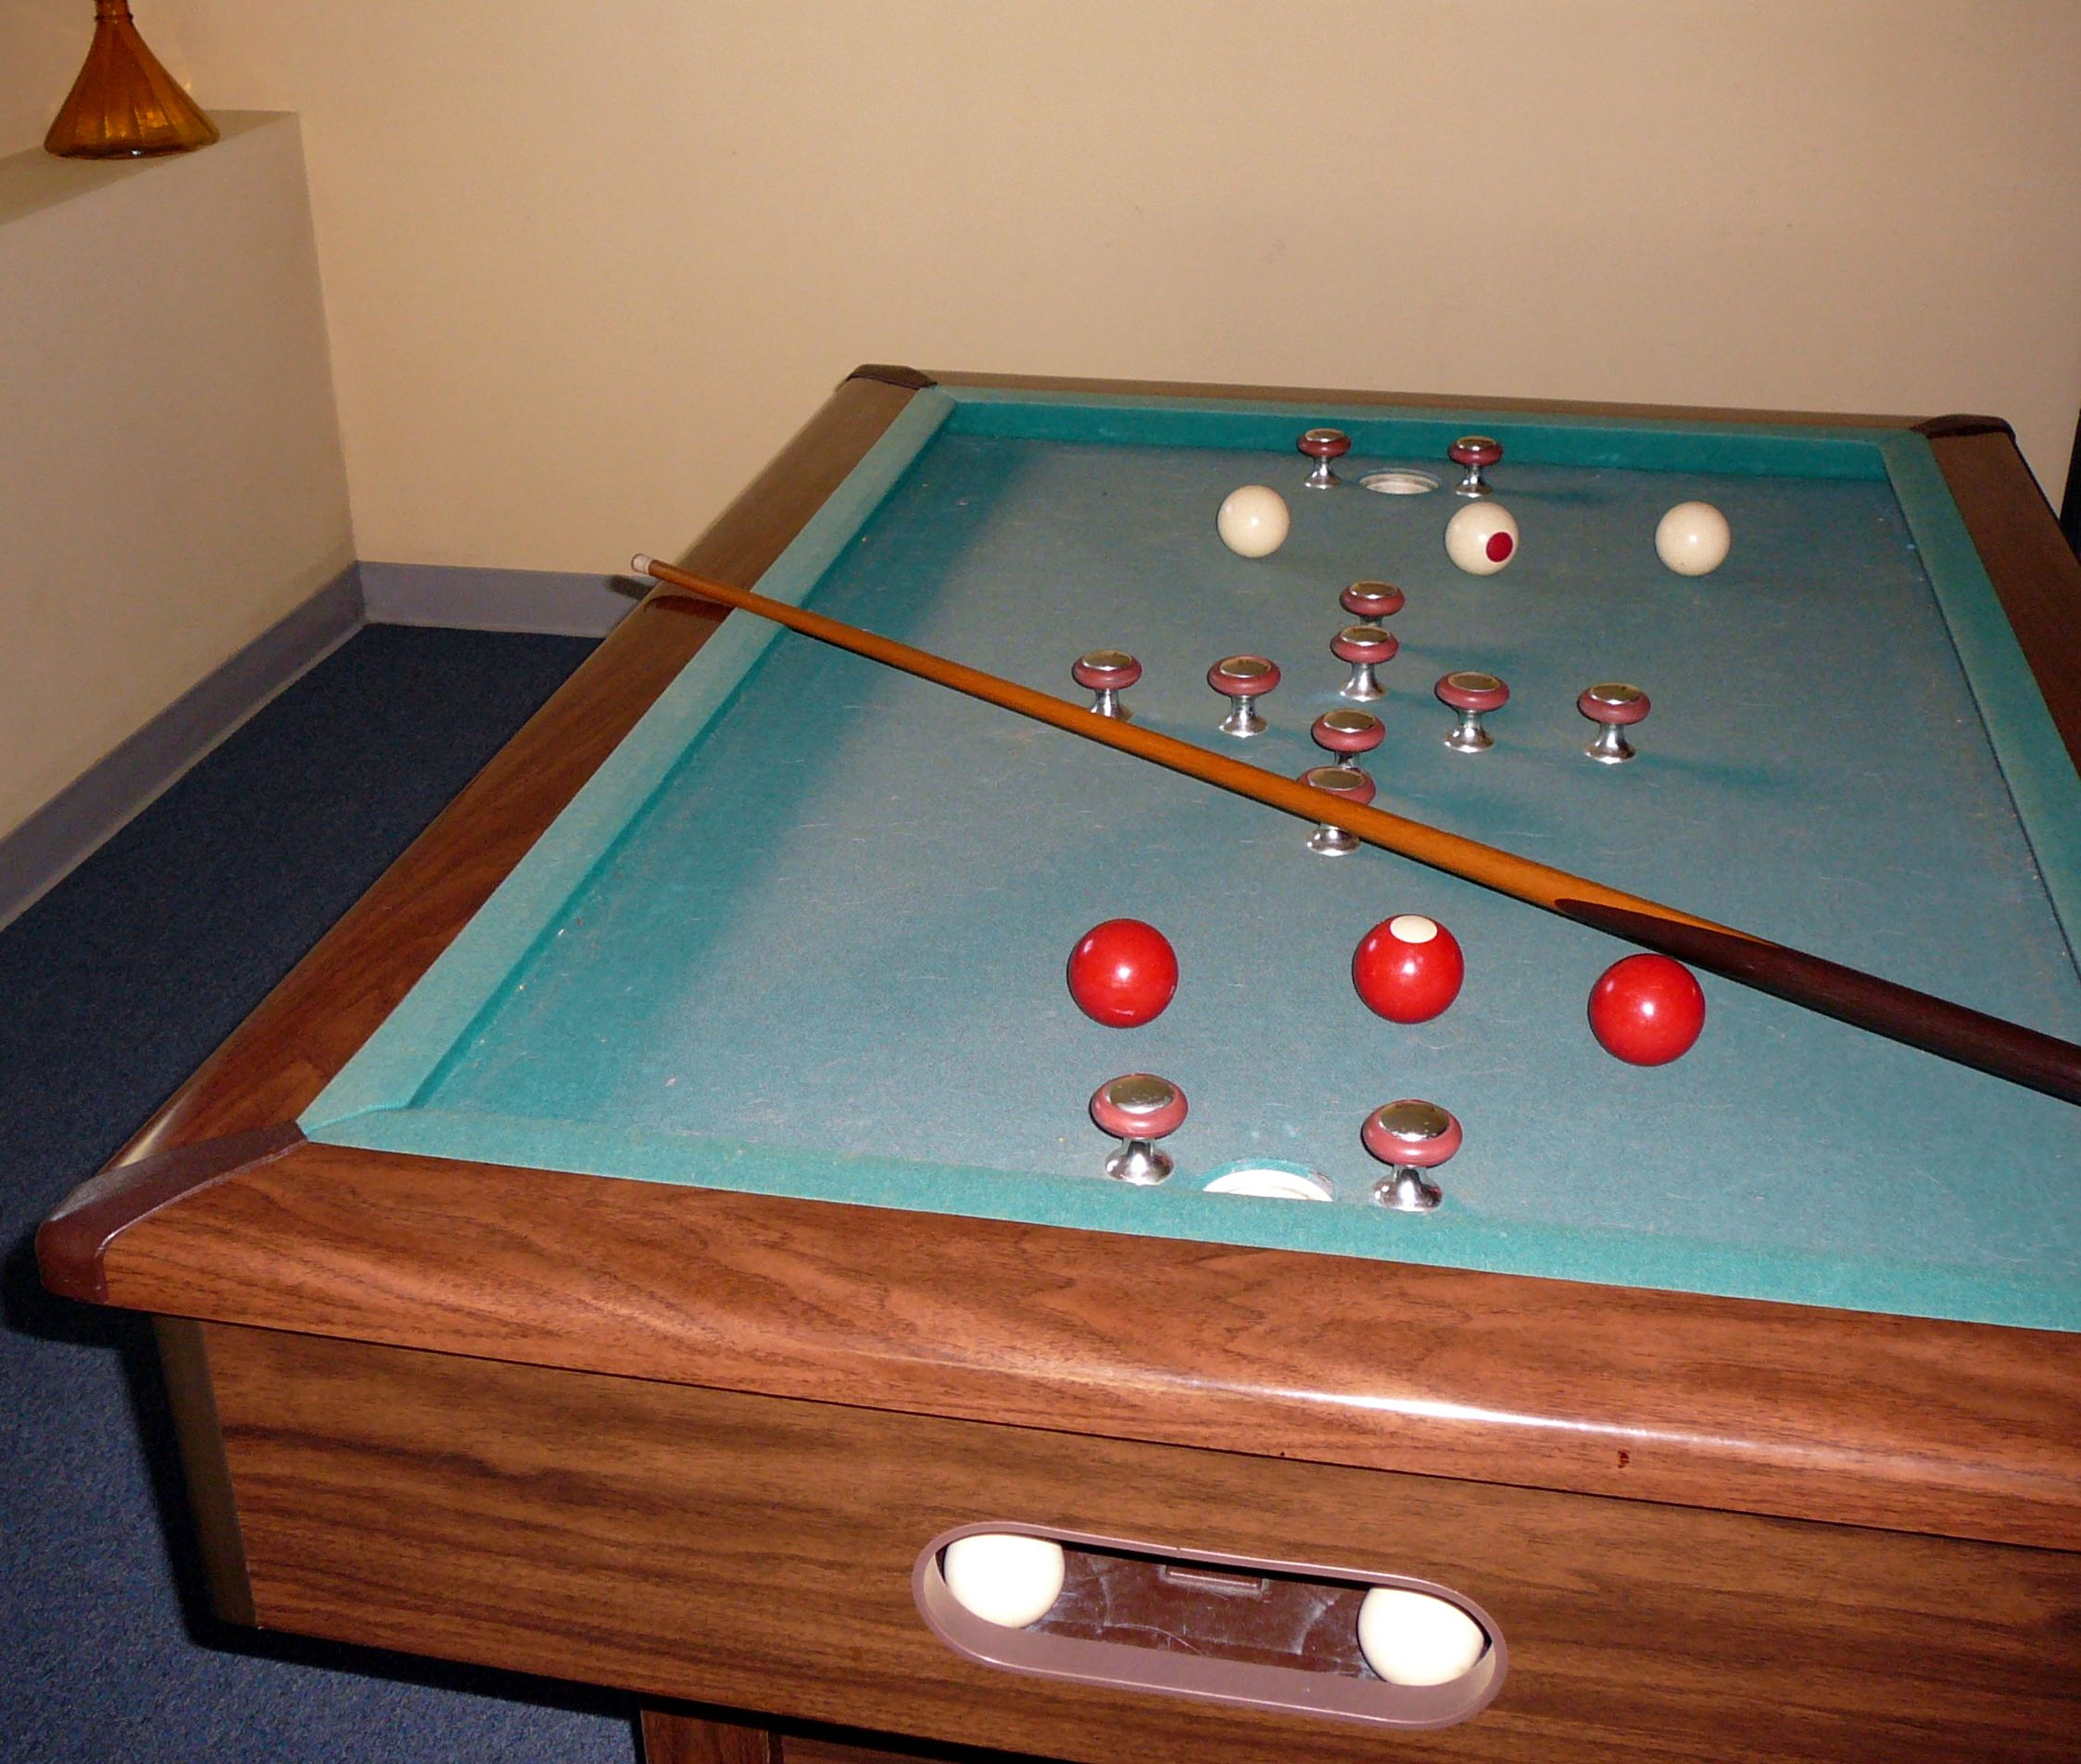 Here Is A Tutorial On How To Play Bumper Pool I Hope You Find It - How big is a pool table